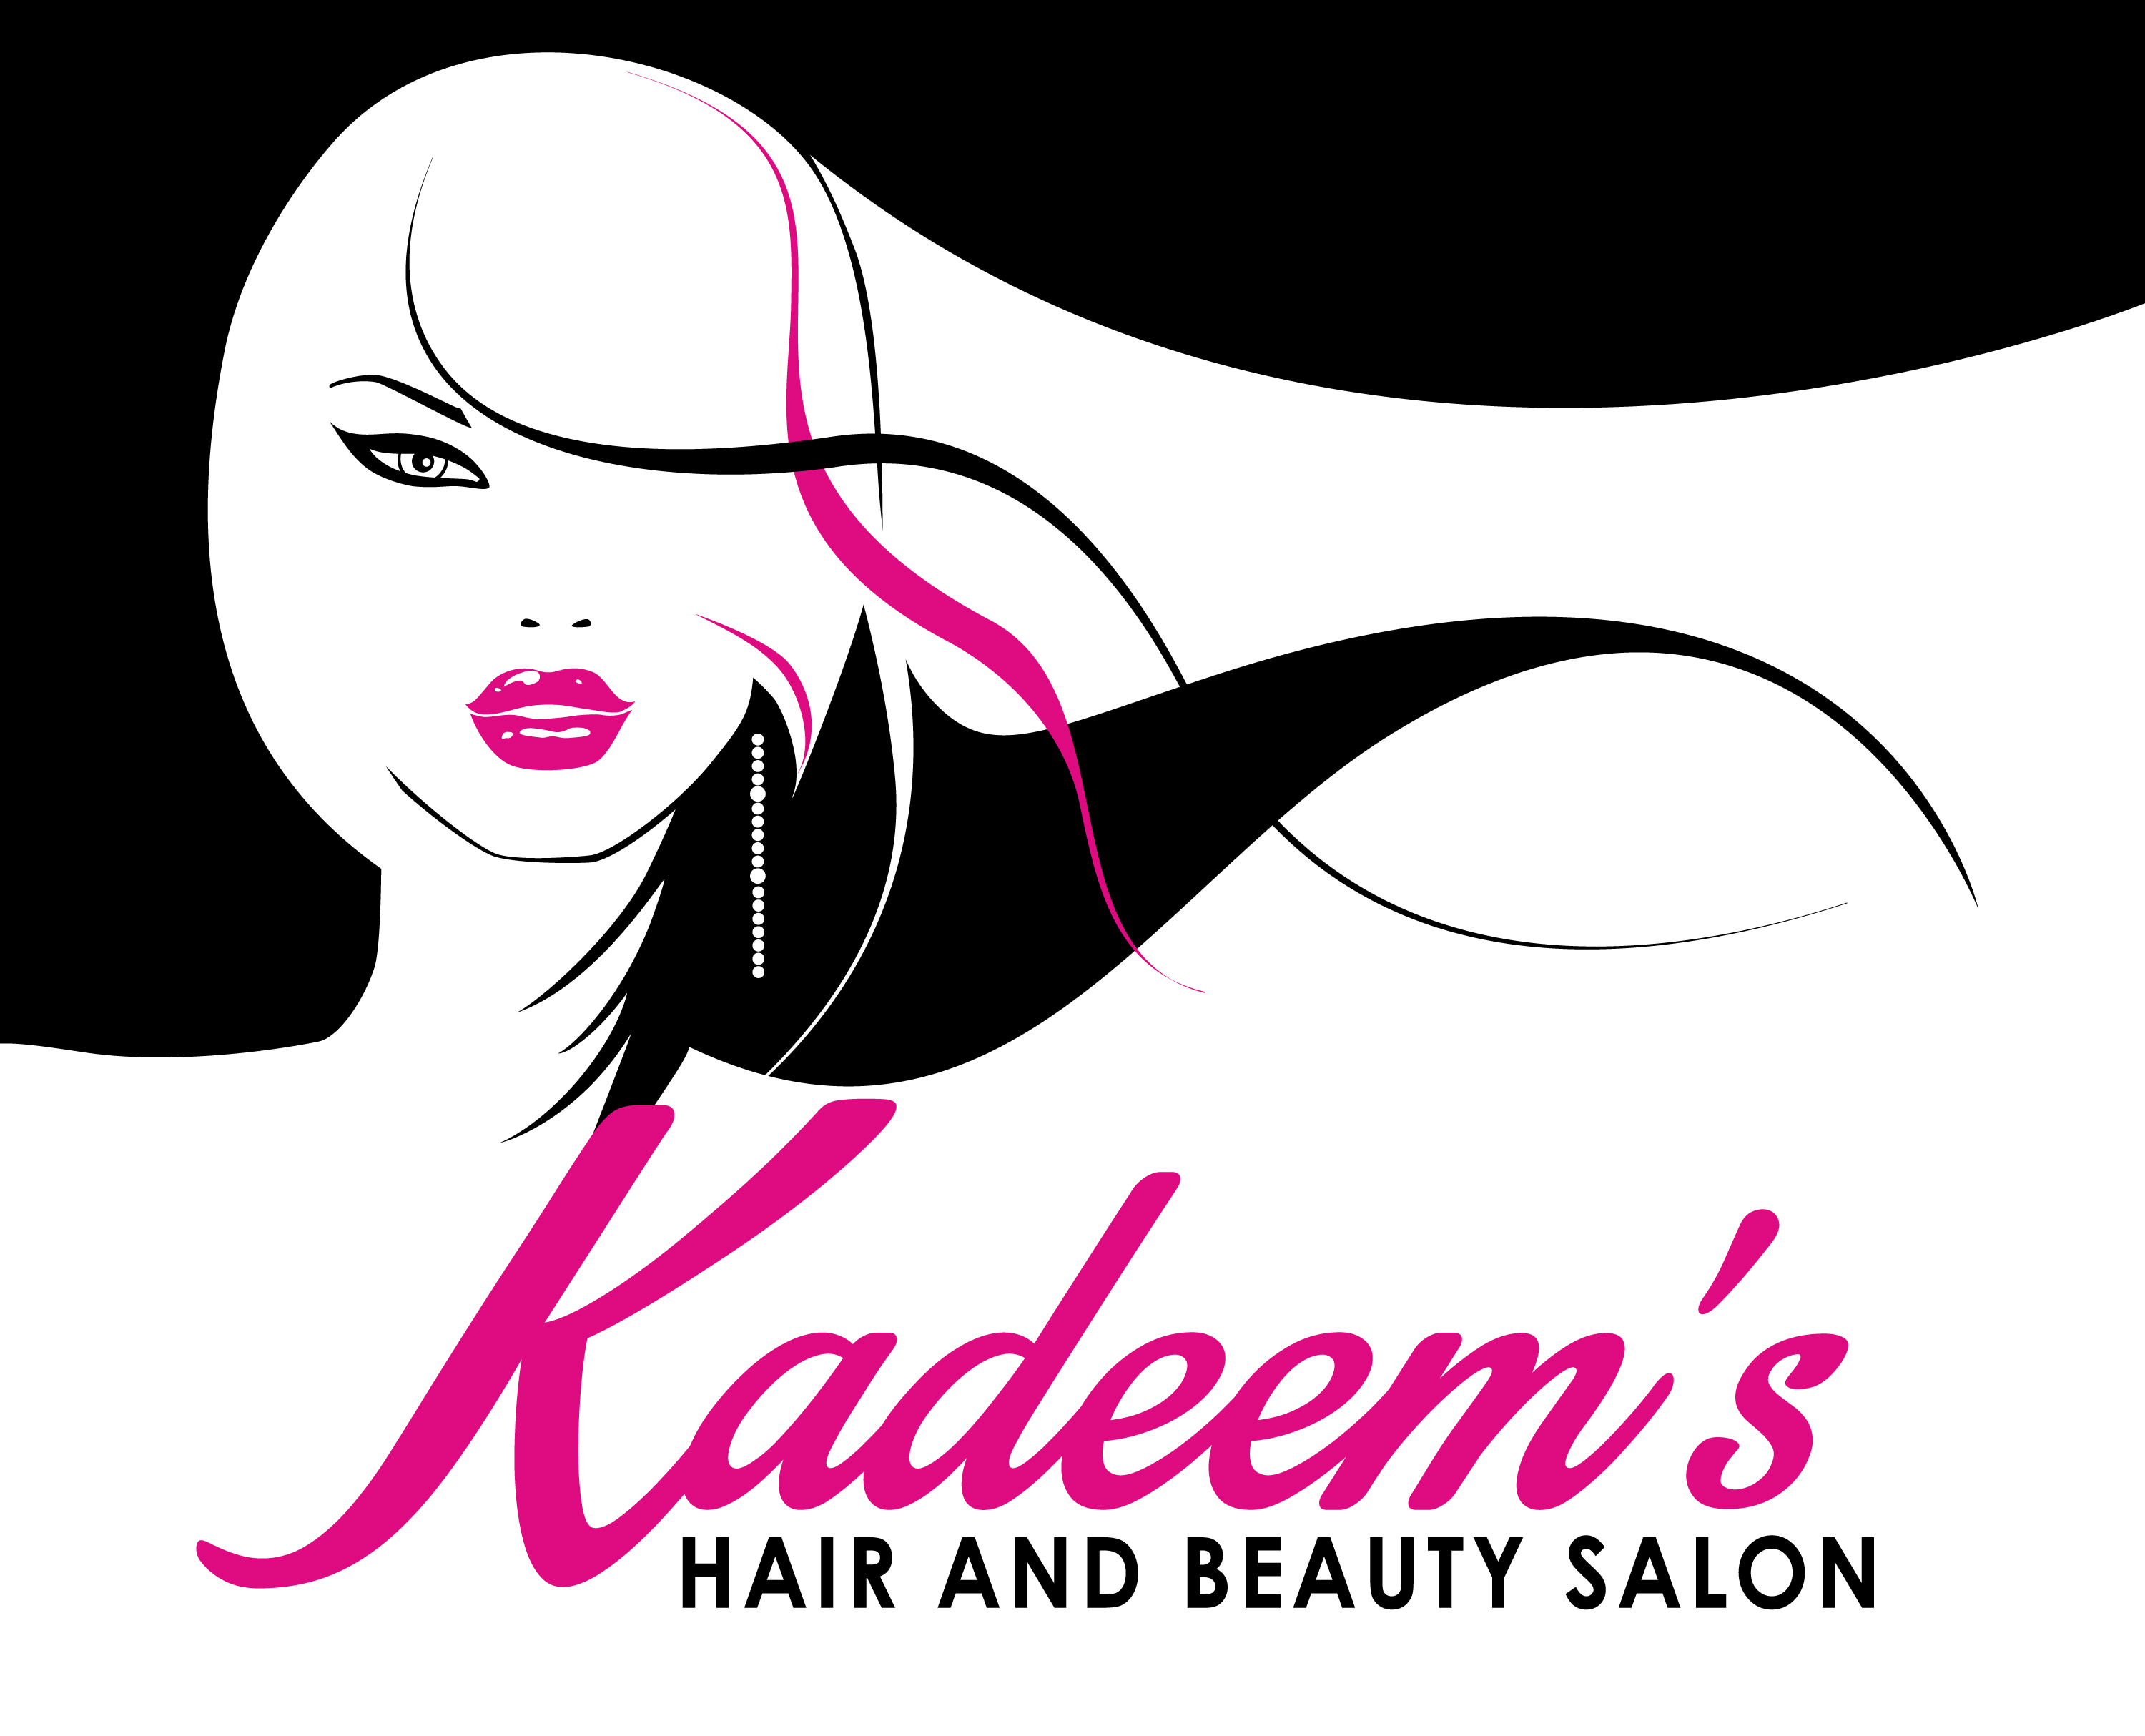 Hair Salon Logos And Clipart